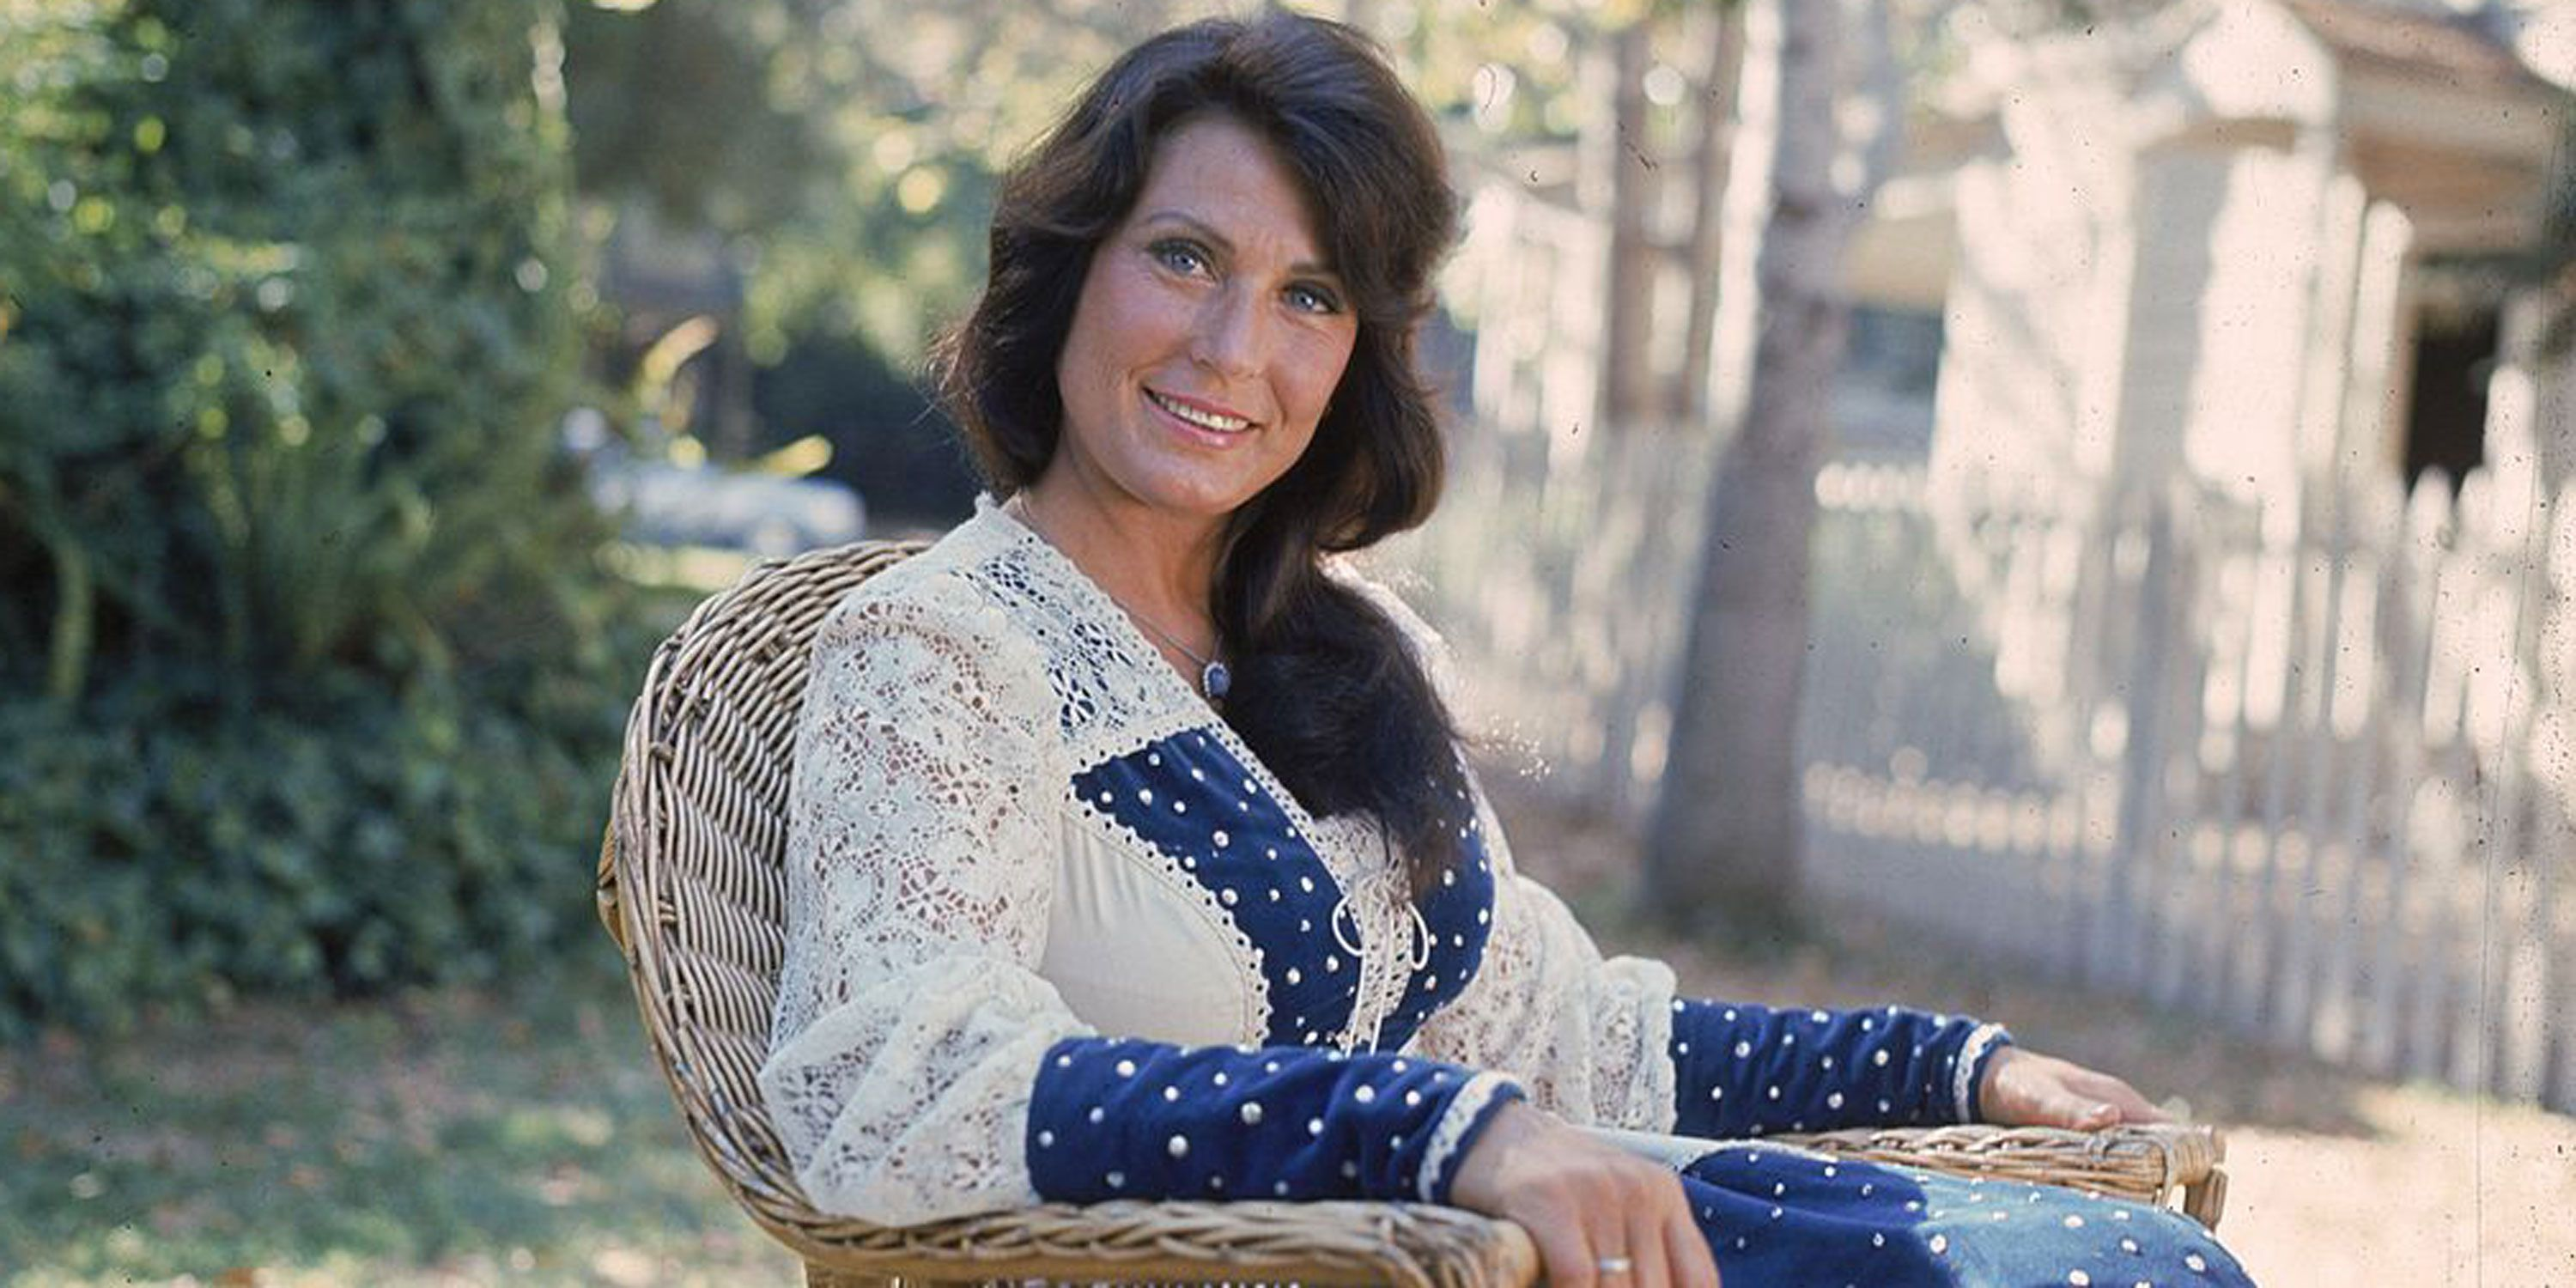 15 Things You Didn't Know About Loretta Lynn